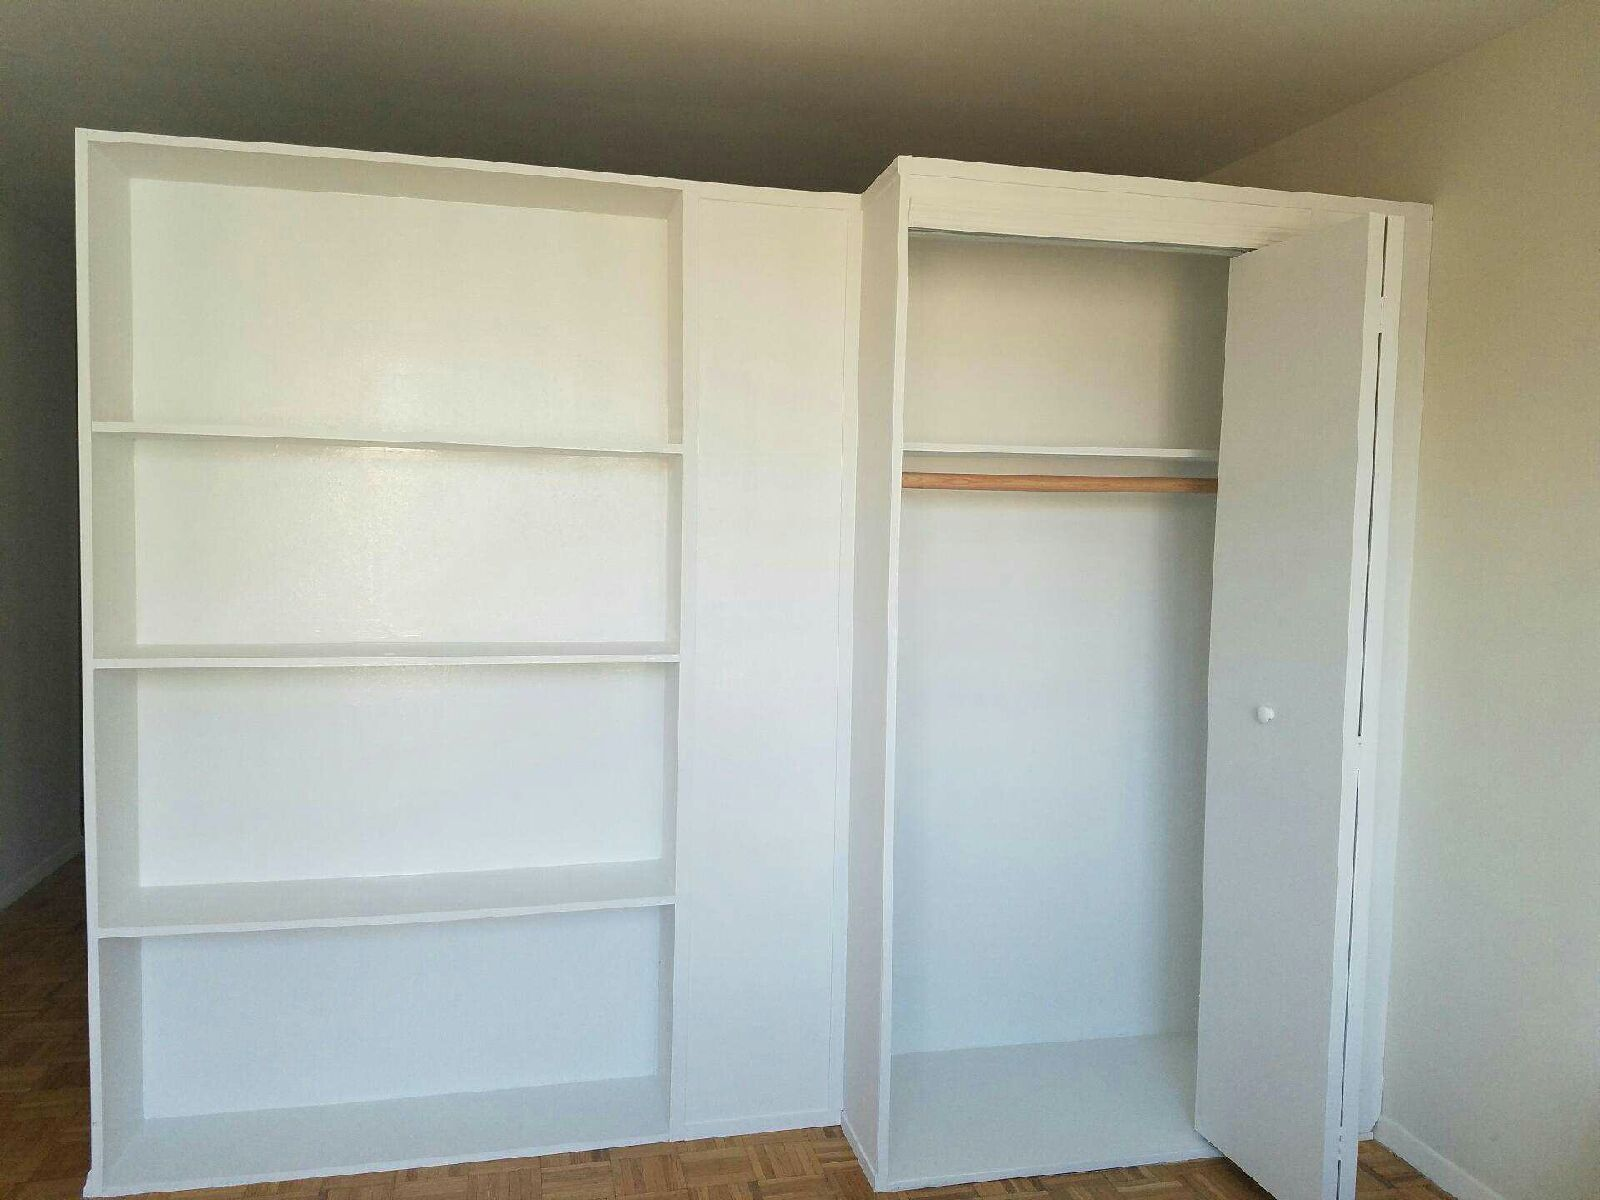 This Bookcase Wall Closet Combo From 2 NY Is A Popular Standard Offering Cost 1500